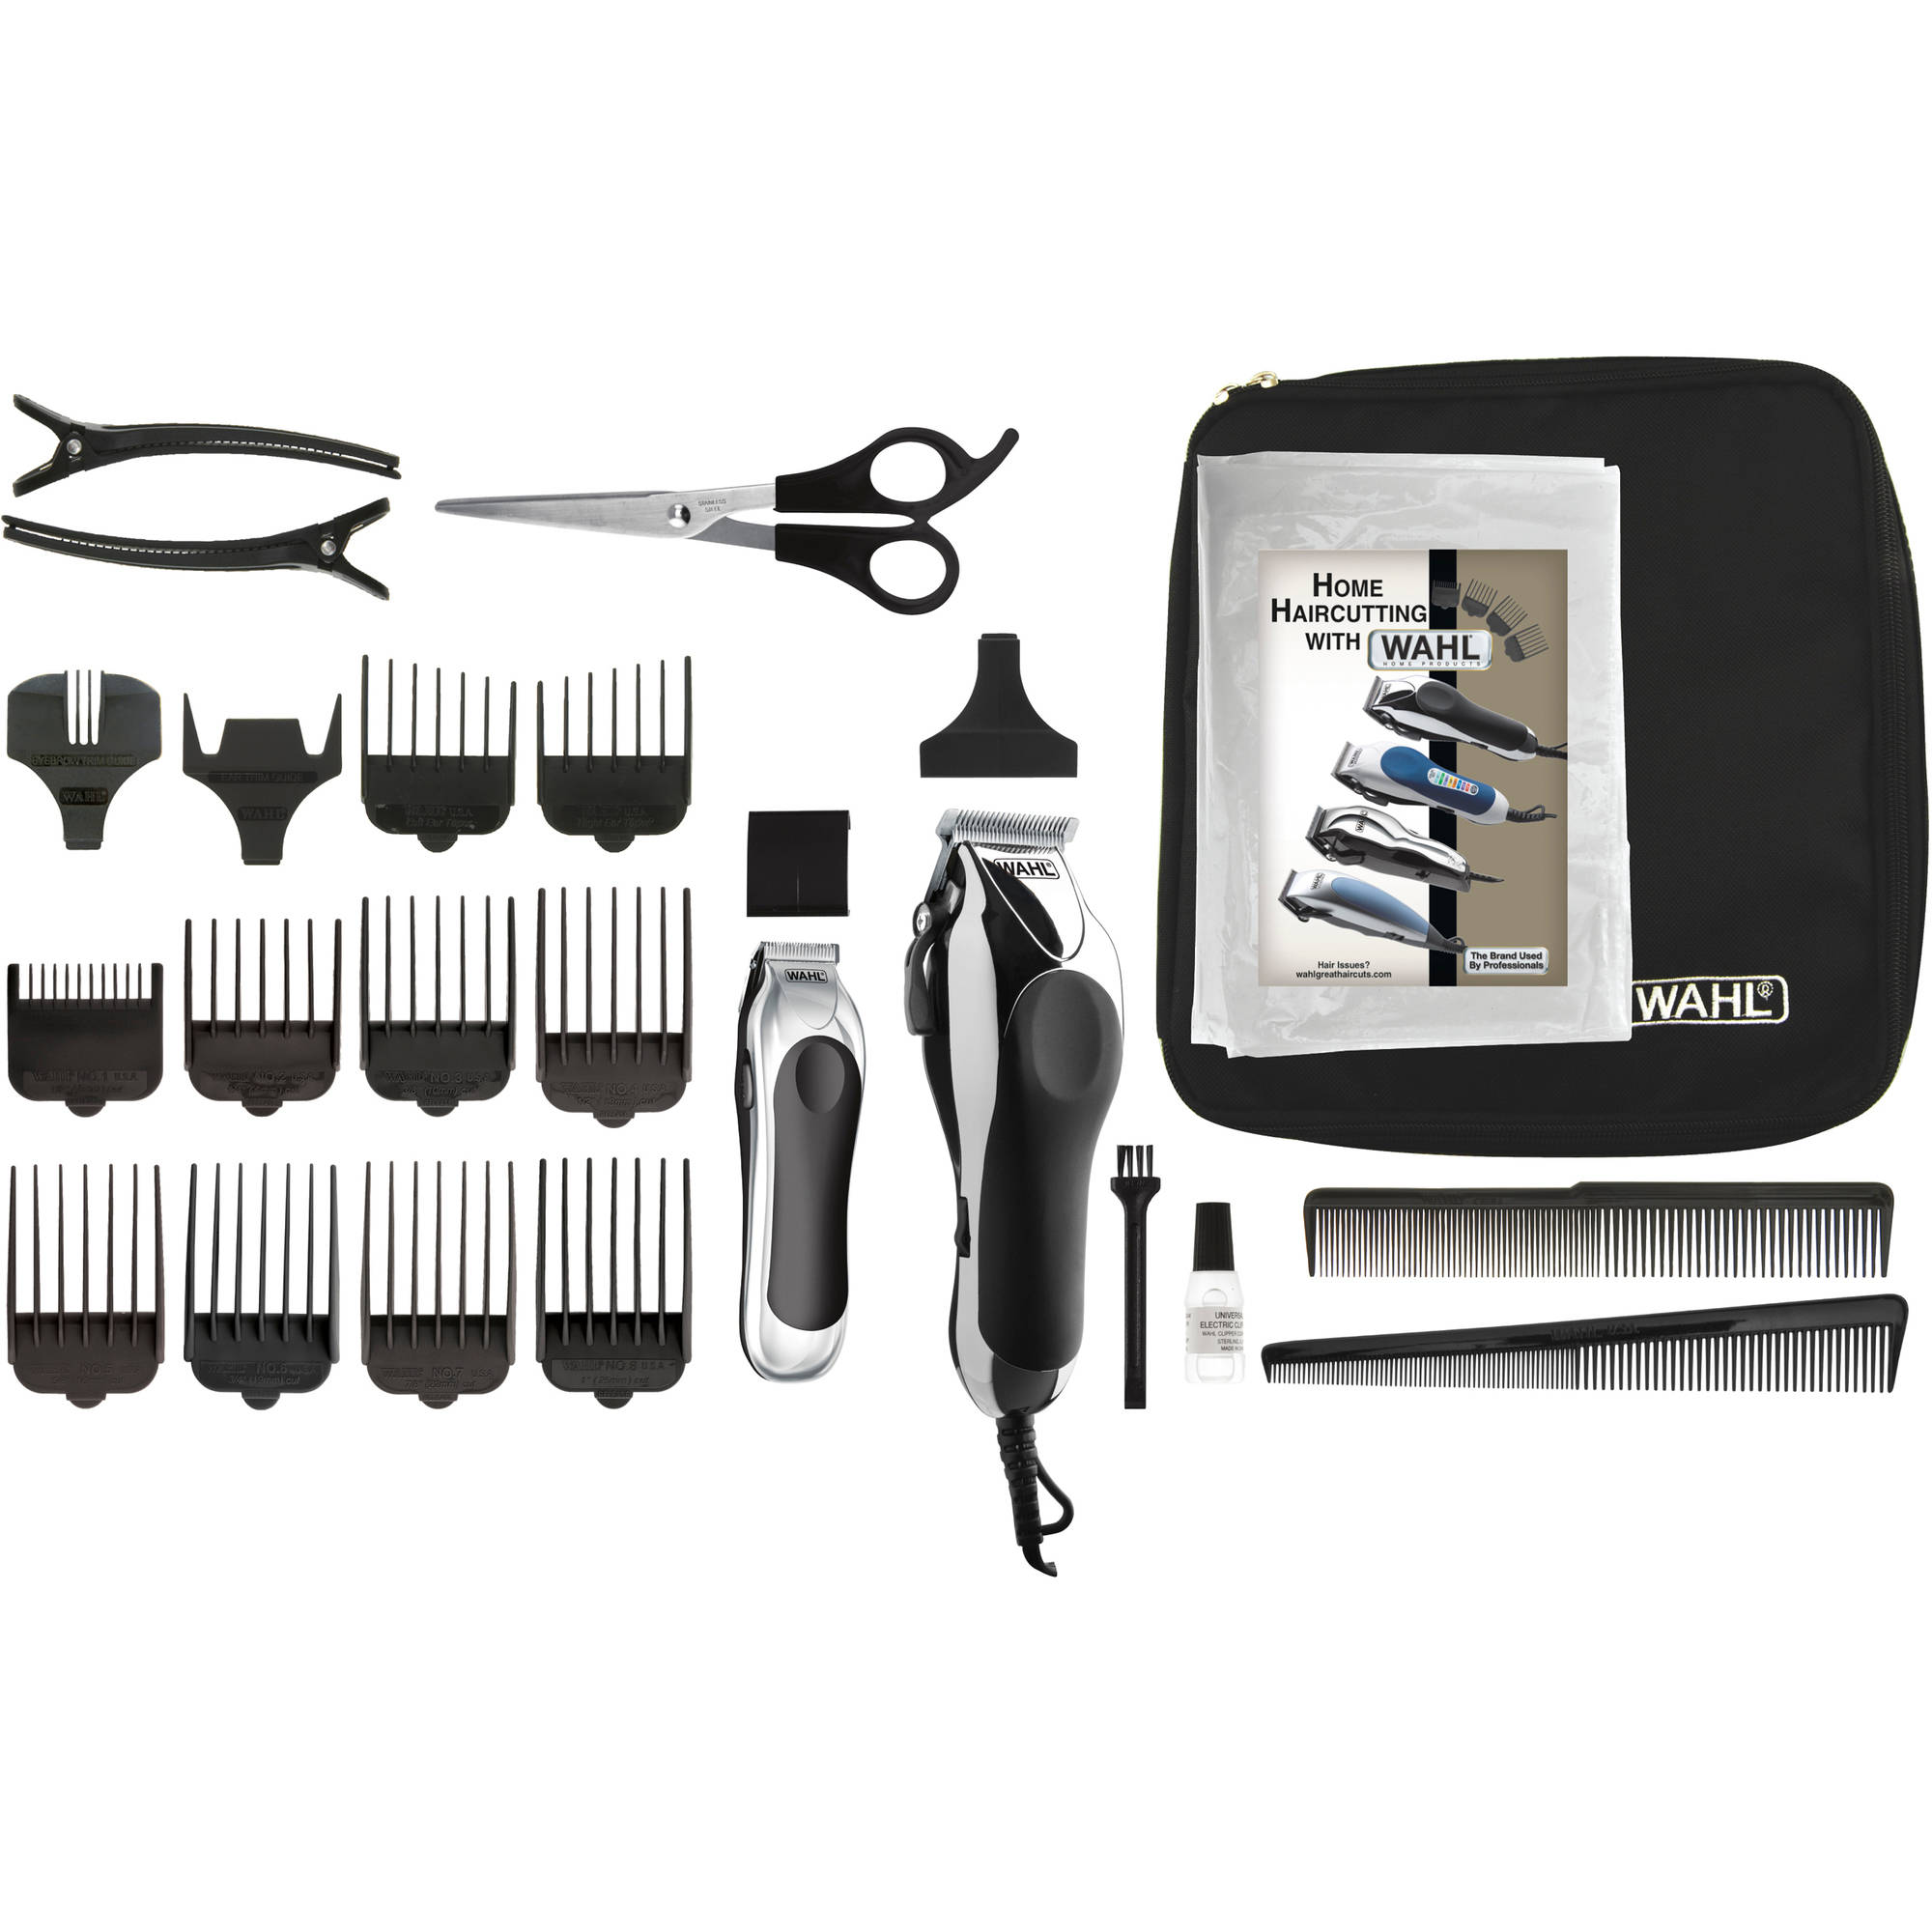 WAHL Deluxe Chrome Pro Home Haircutting Kit, Model 79524-5201